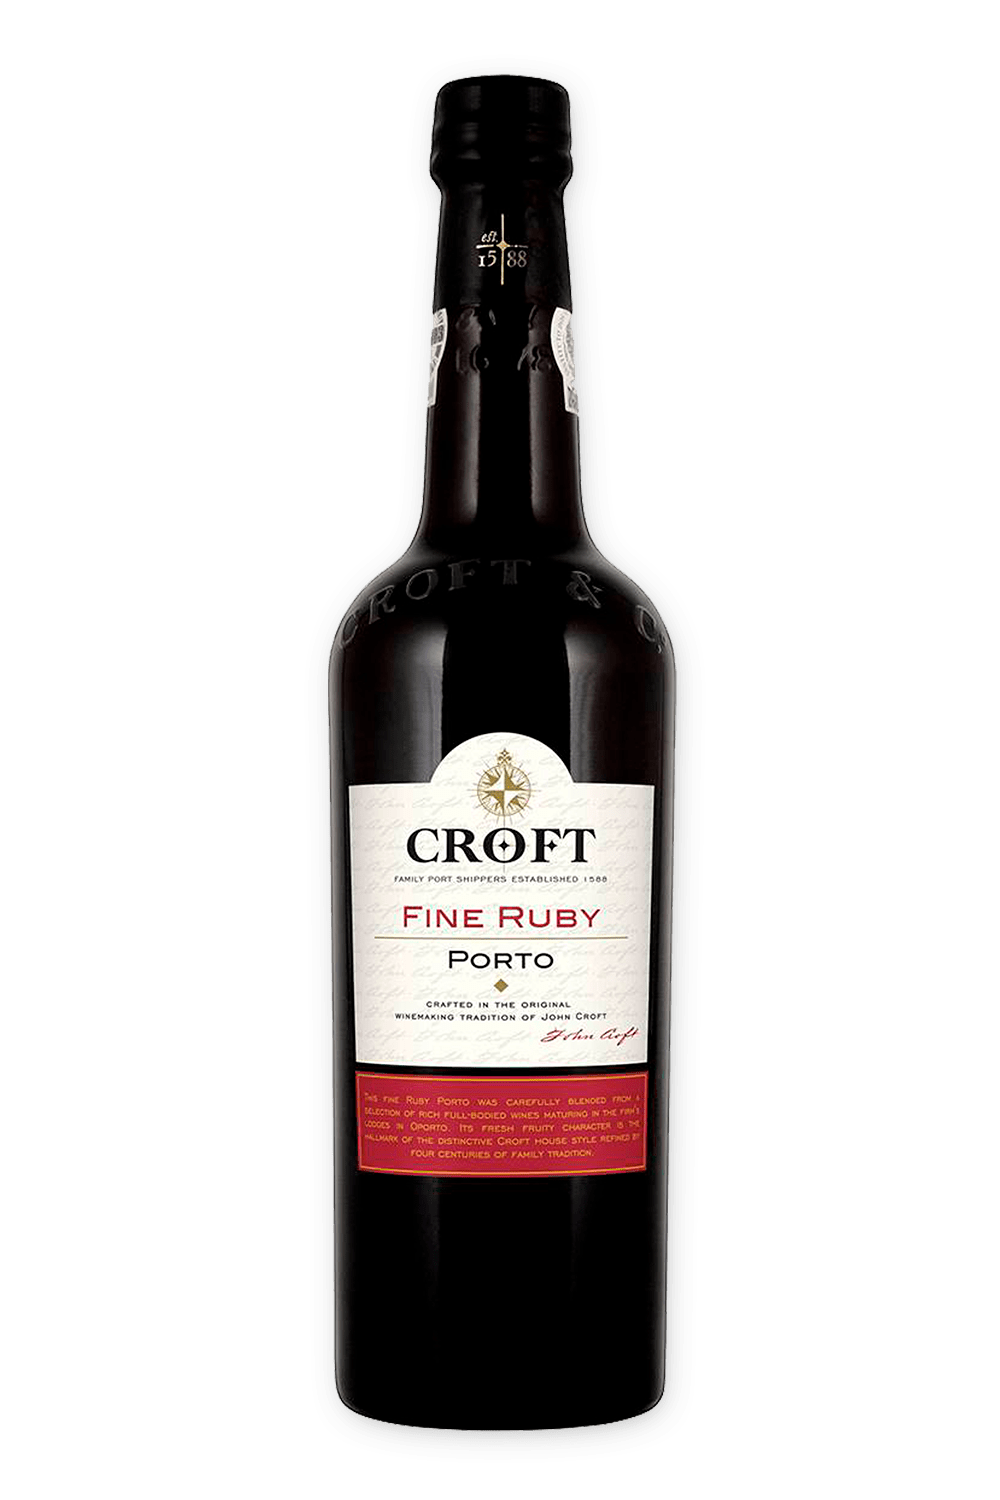 Croft-Porto-Fine-Ruby